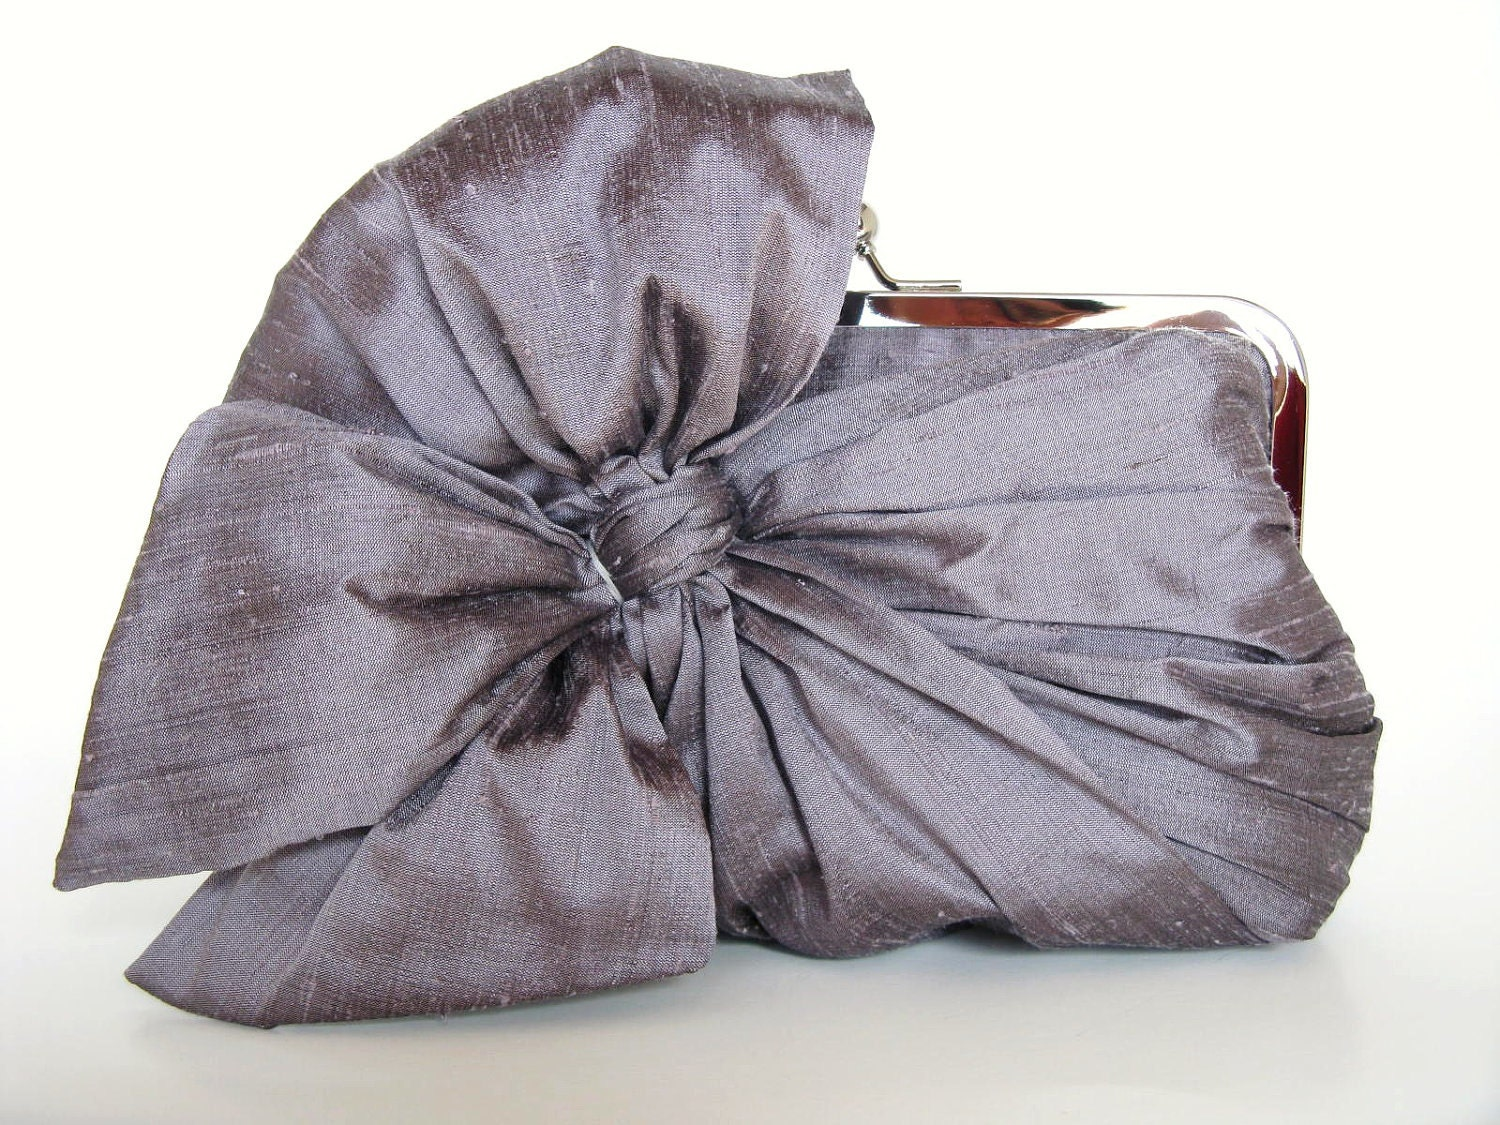 Silk Bow-charcoal-Bridal Clutch-Bridesmaid Clutch-Clutch Purse-Formal